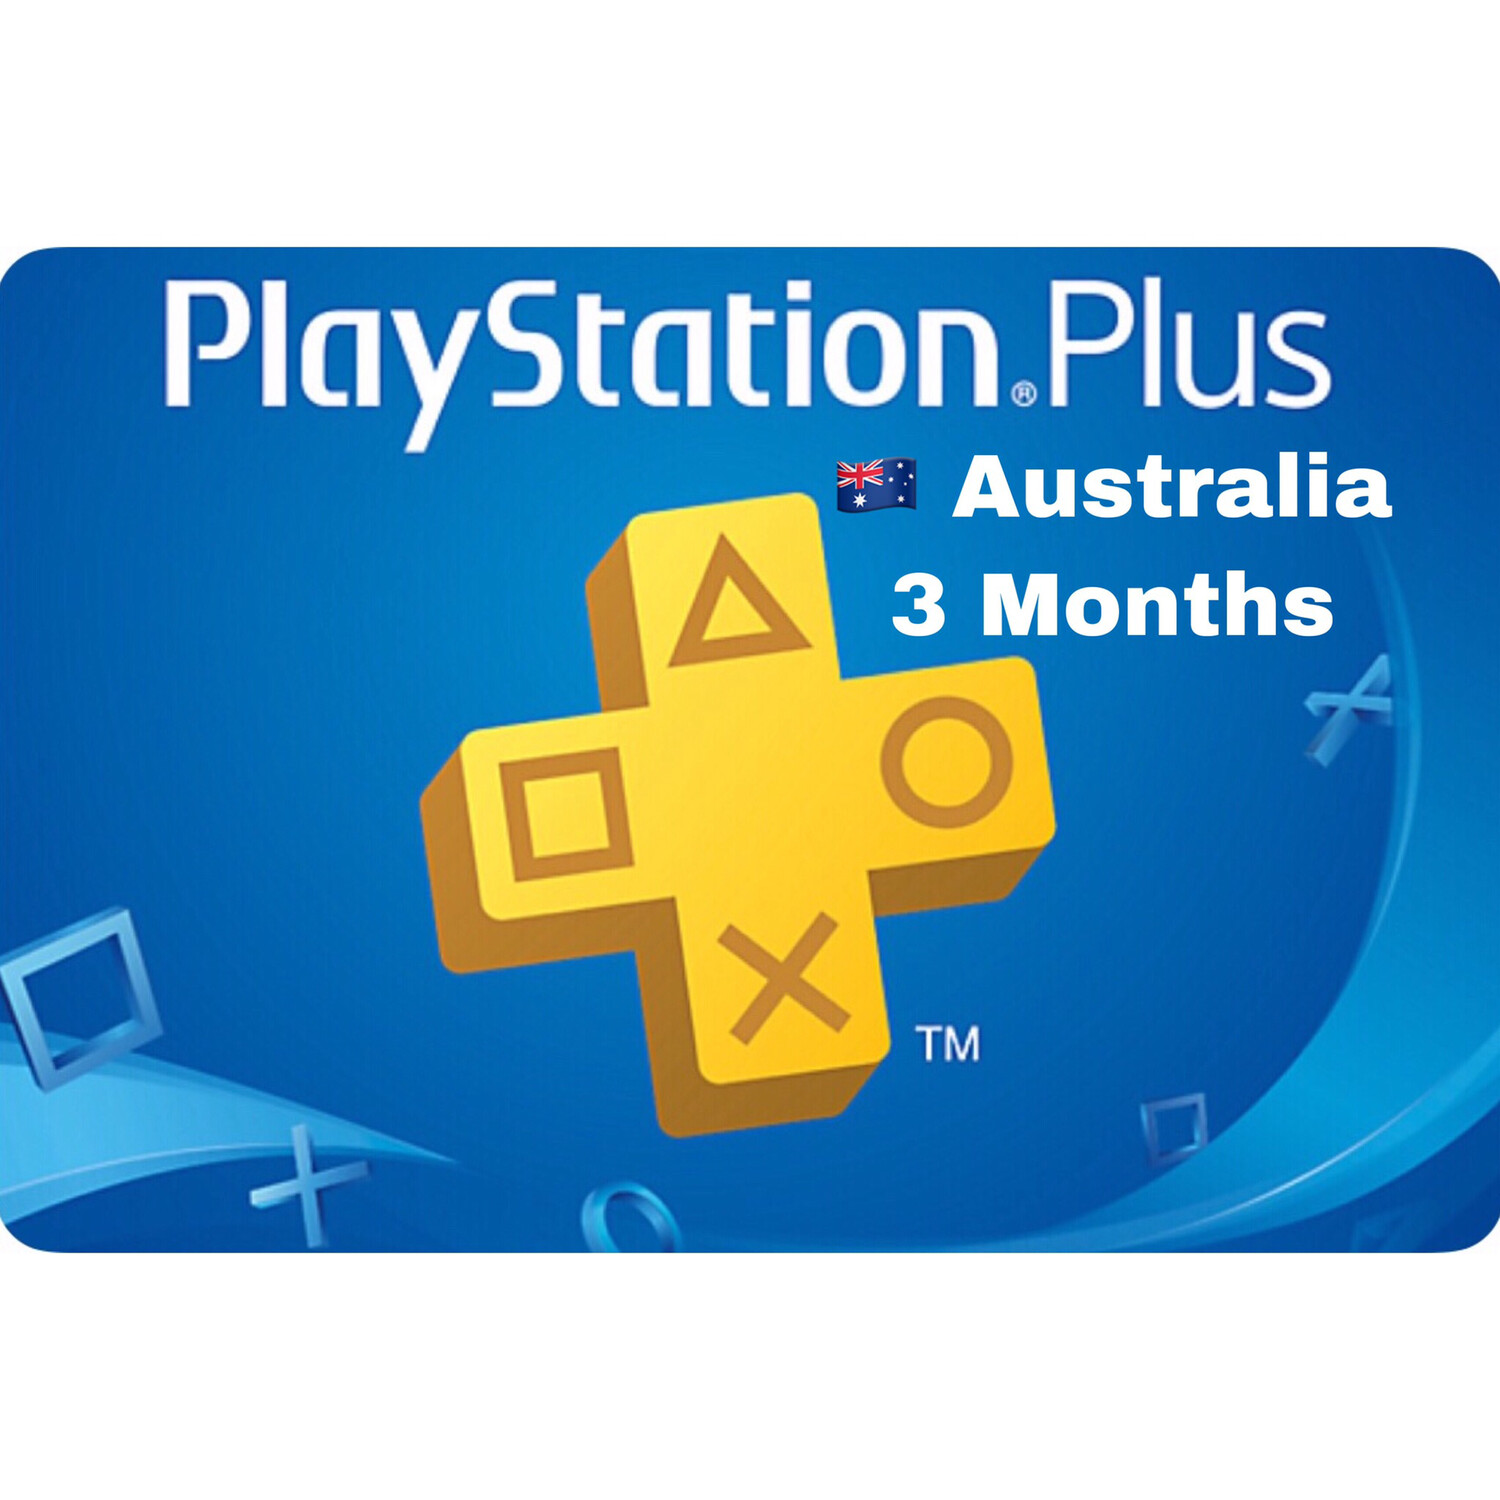 Playstation Plus (PSN Plus) Australia 3 Months